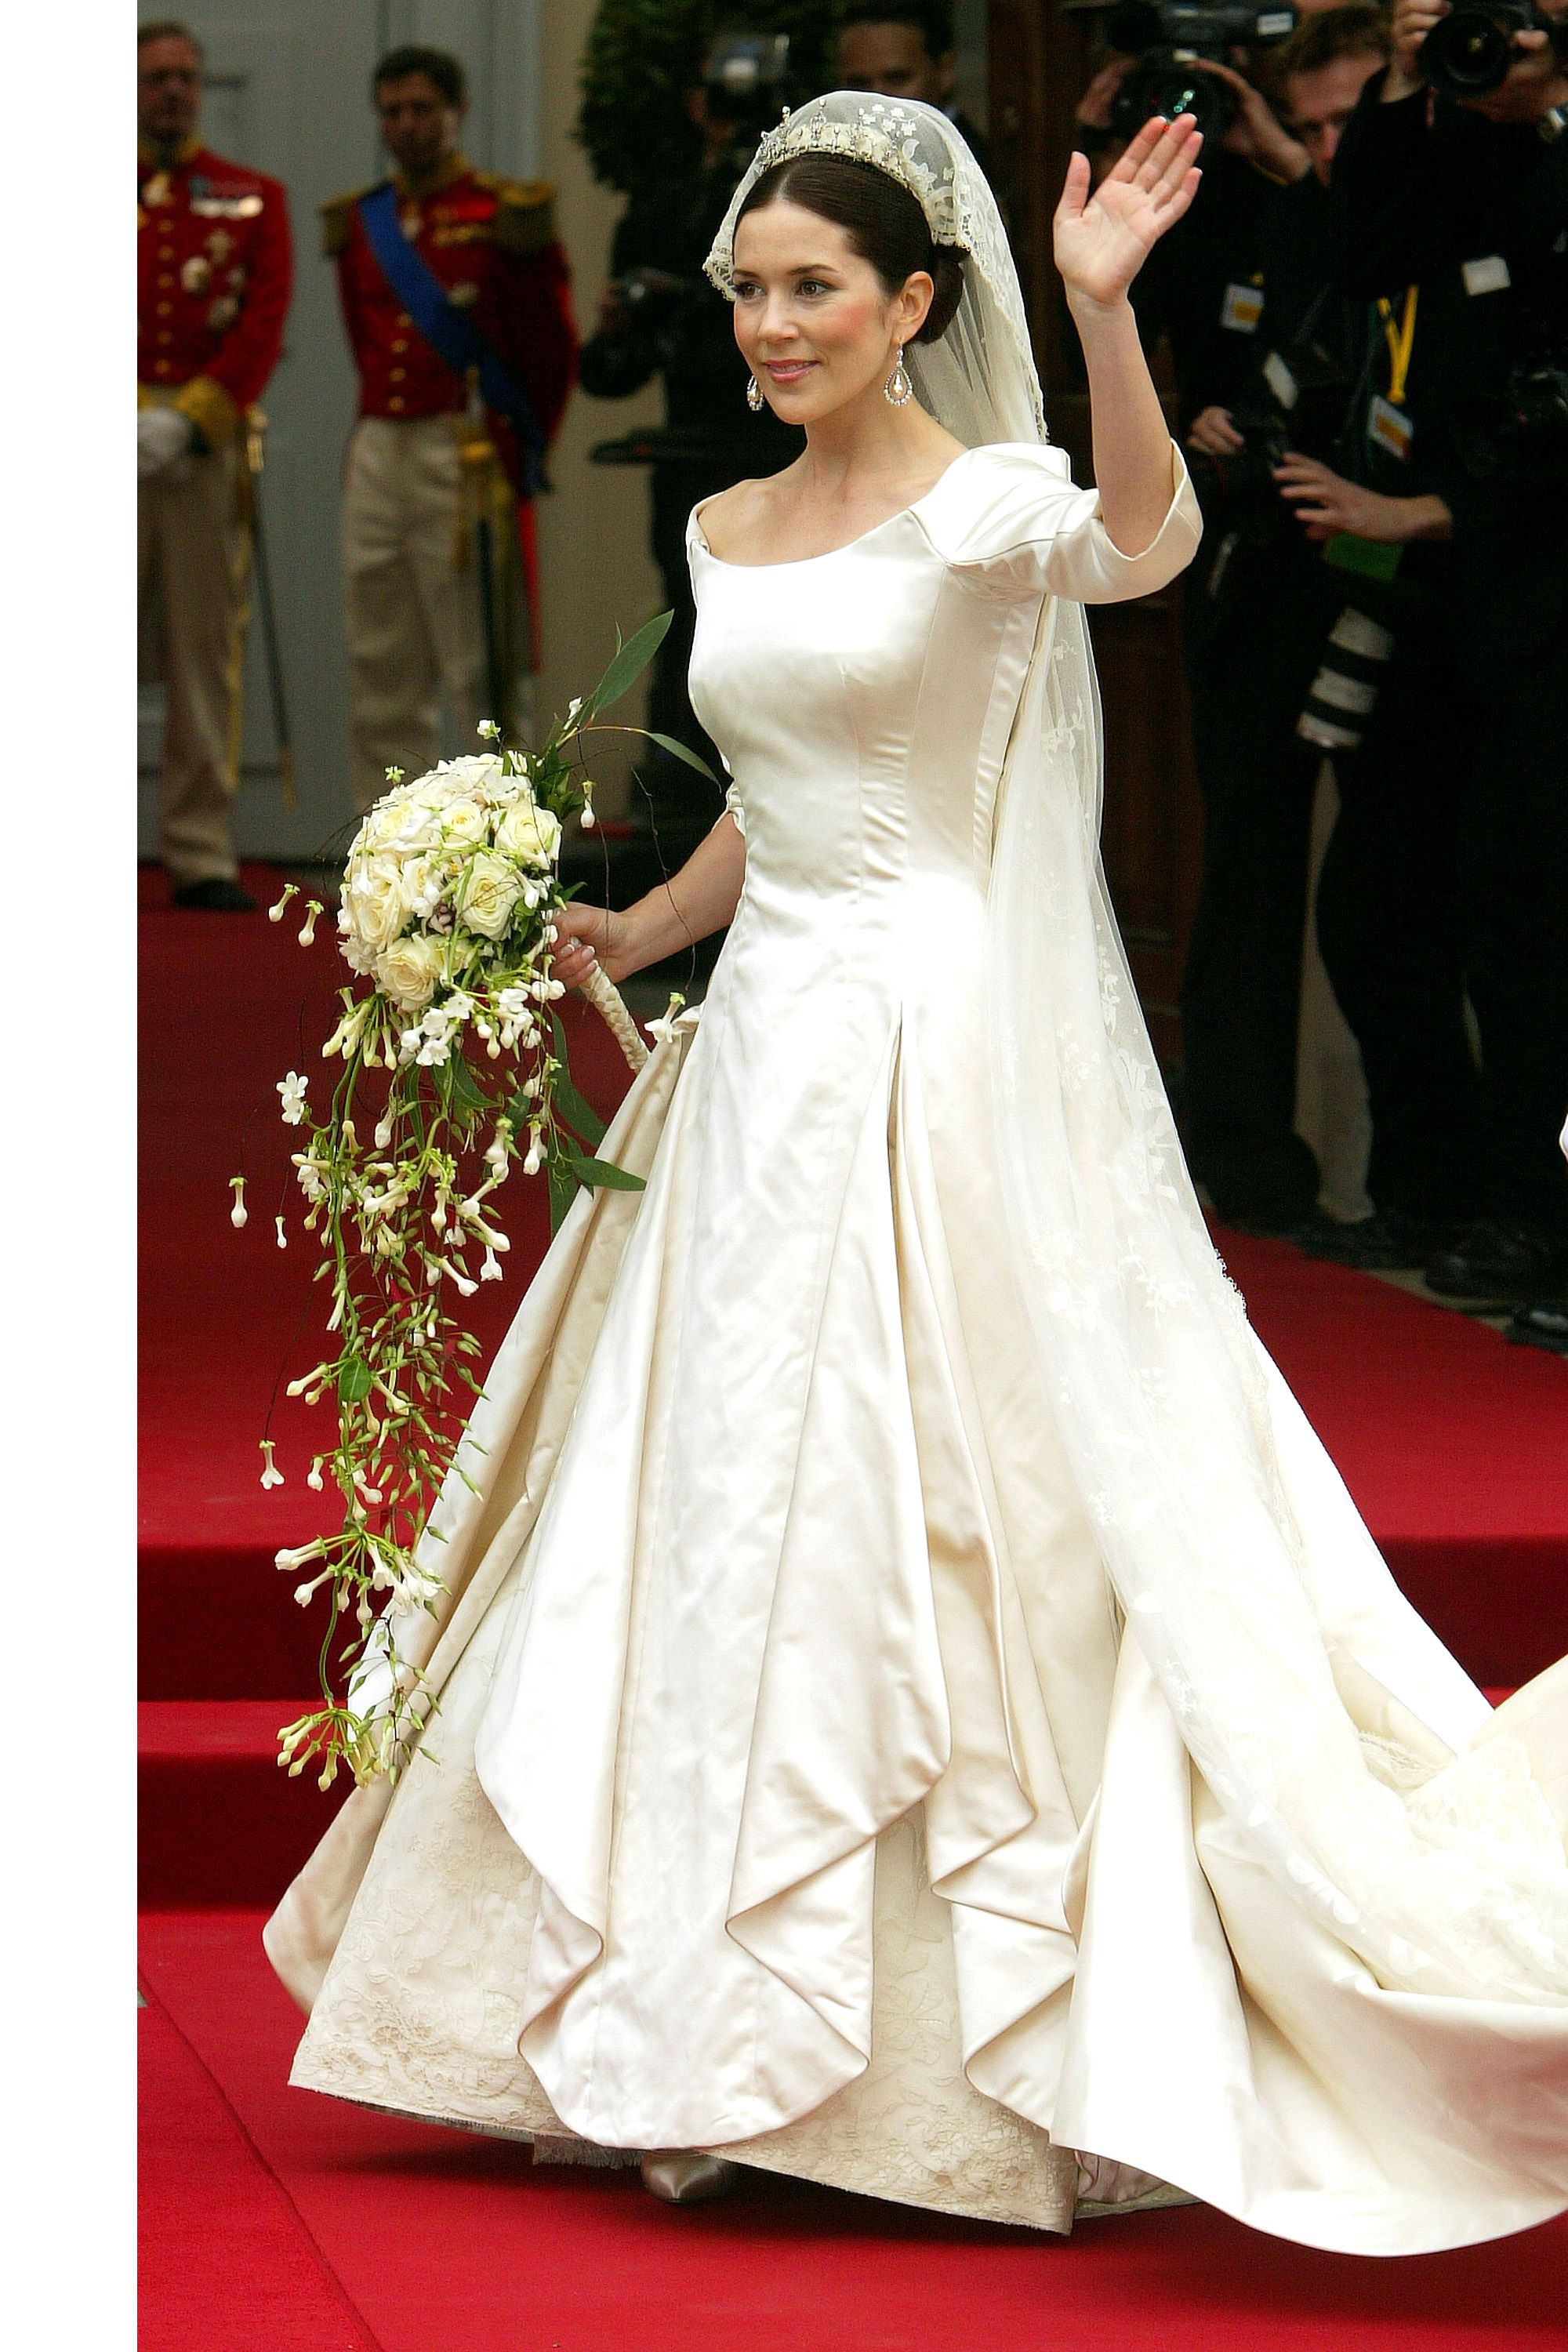 The Most Iconic Royal Wedding Gowns of All Time | adidas ...